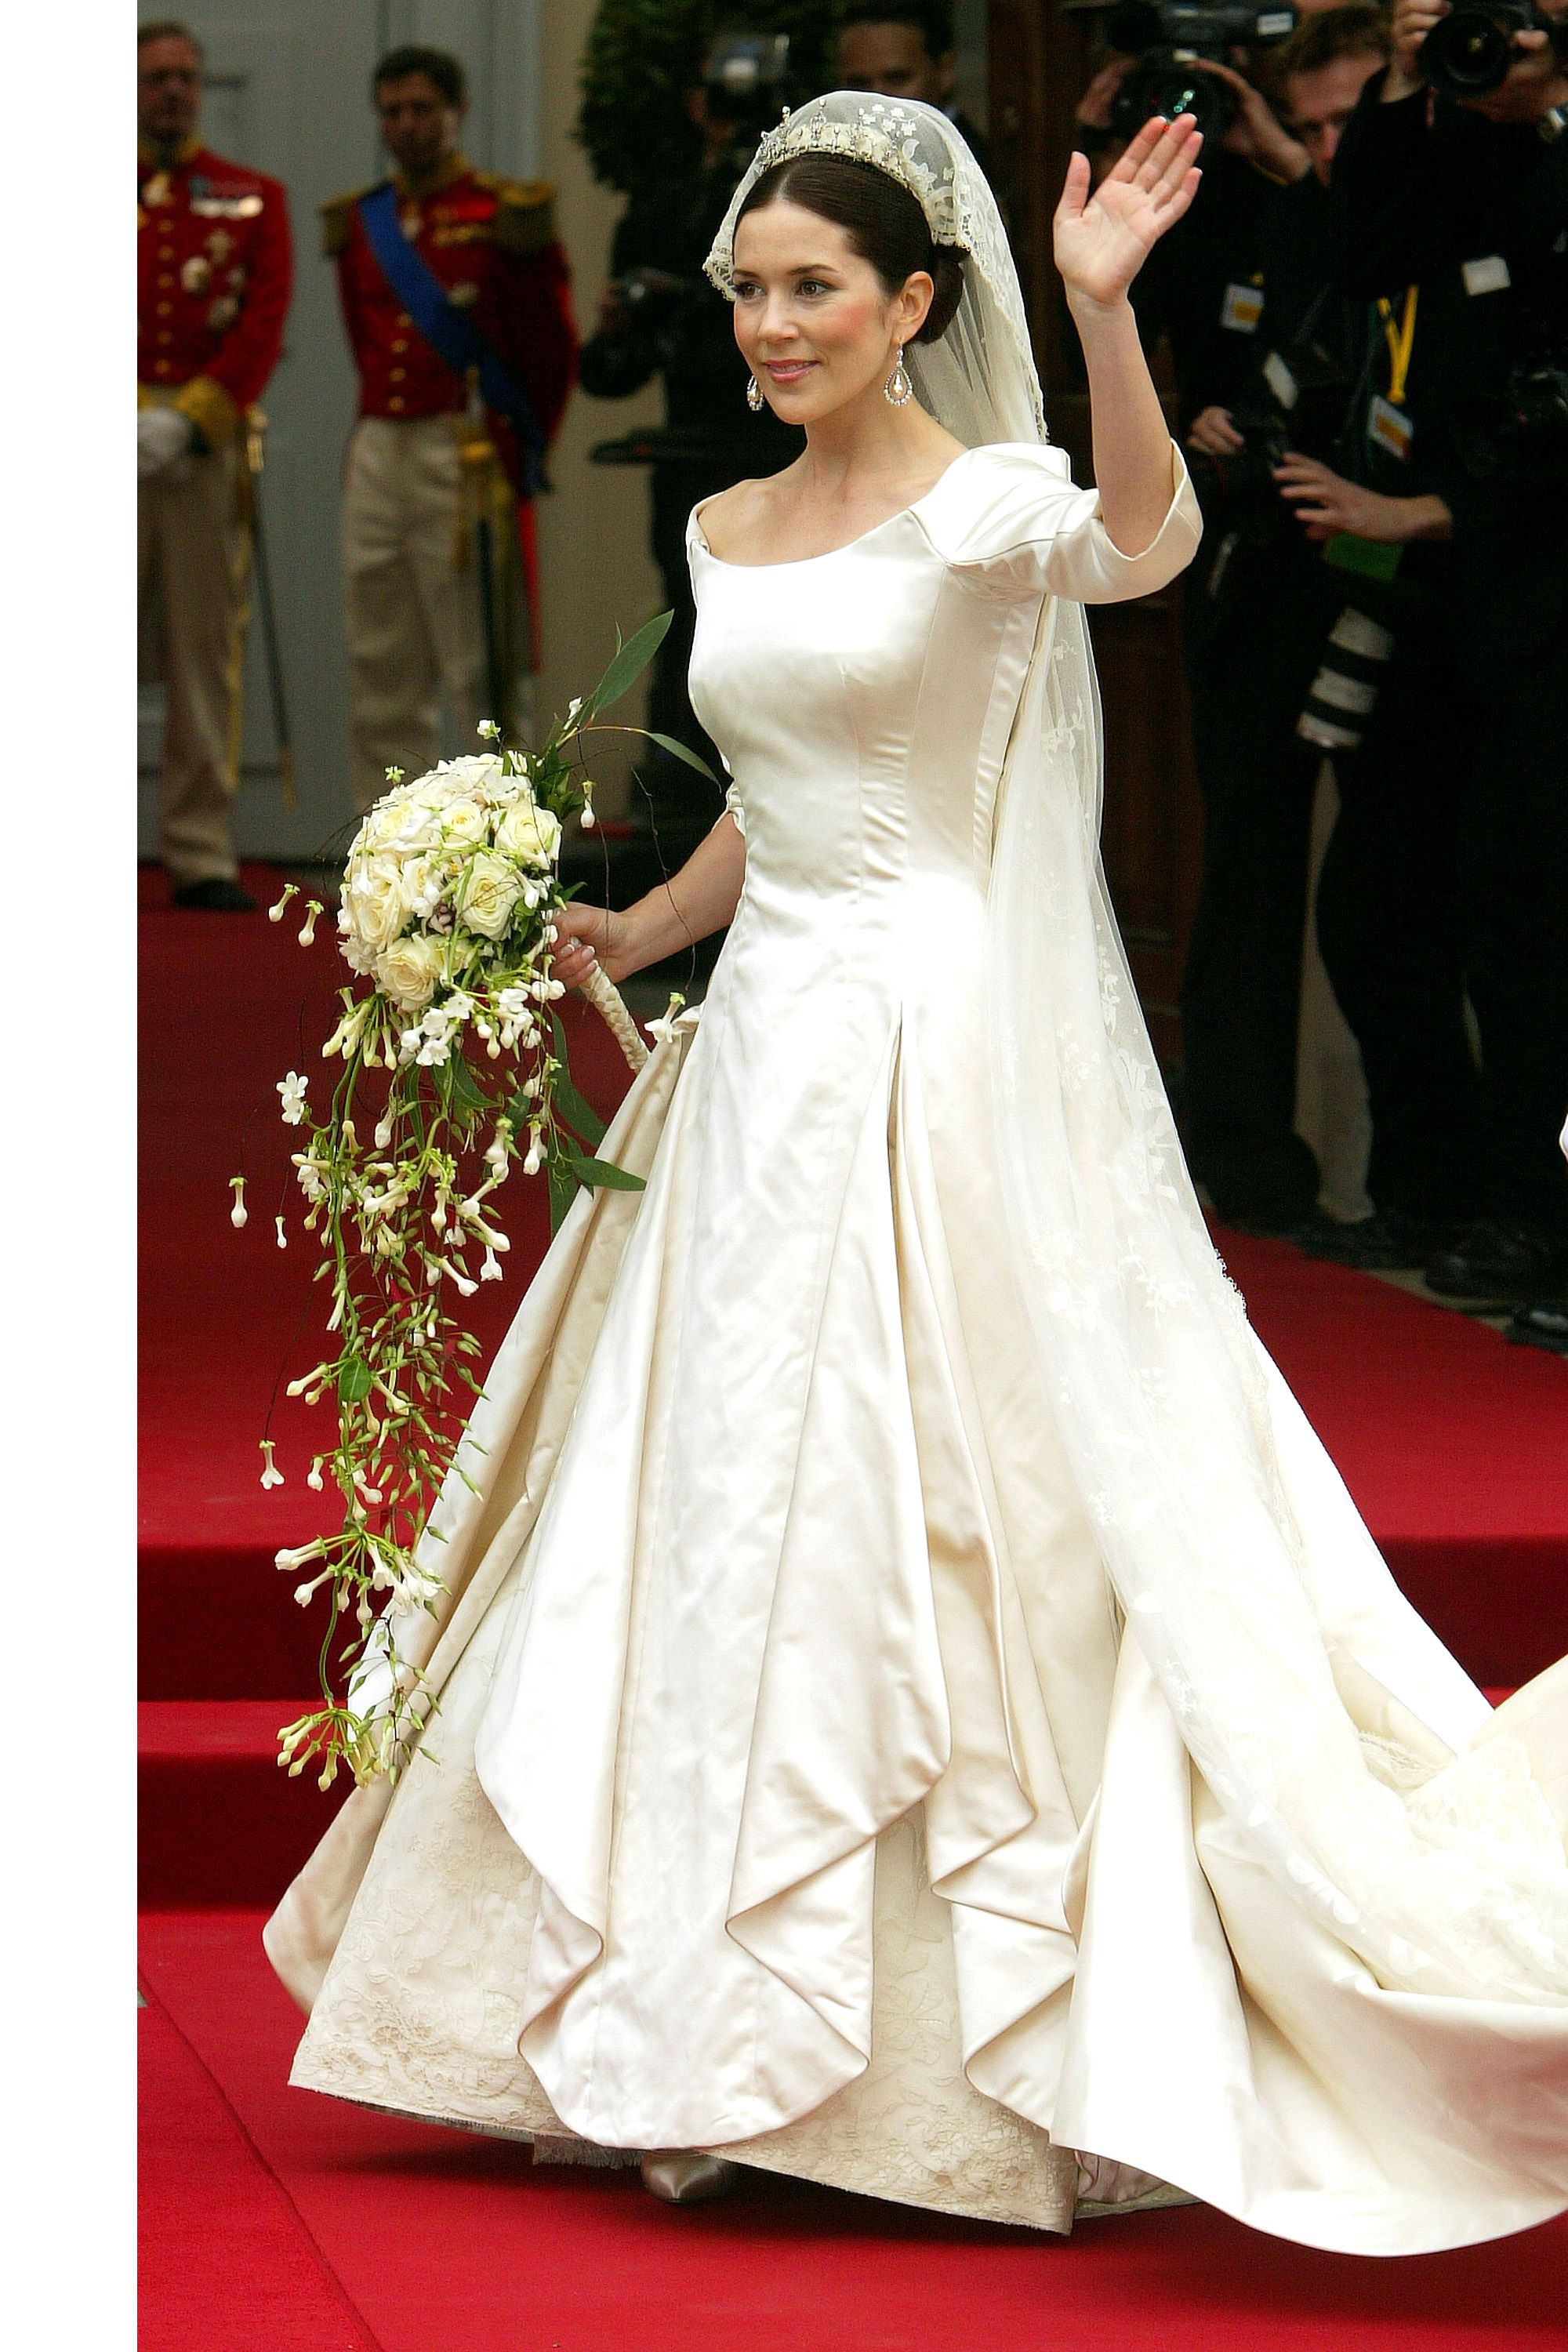 The Most Iconic Royal Wedding Gowns of All Time | adidas ...